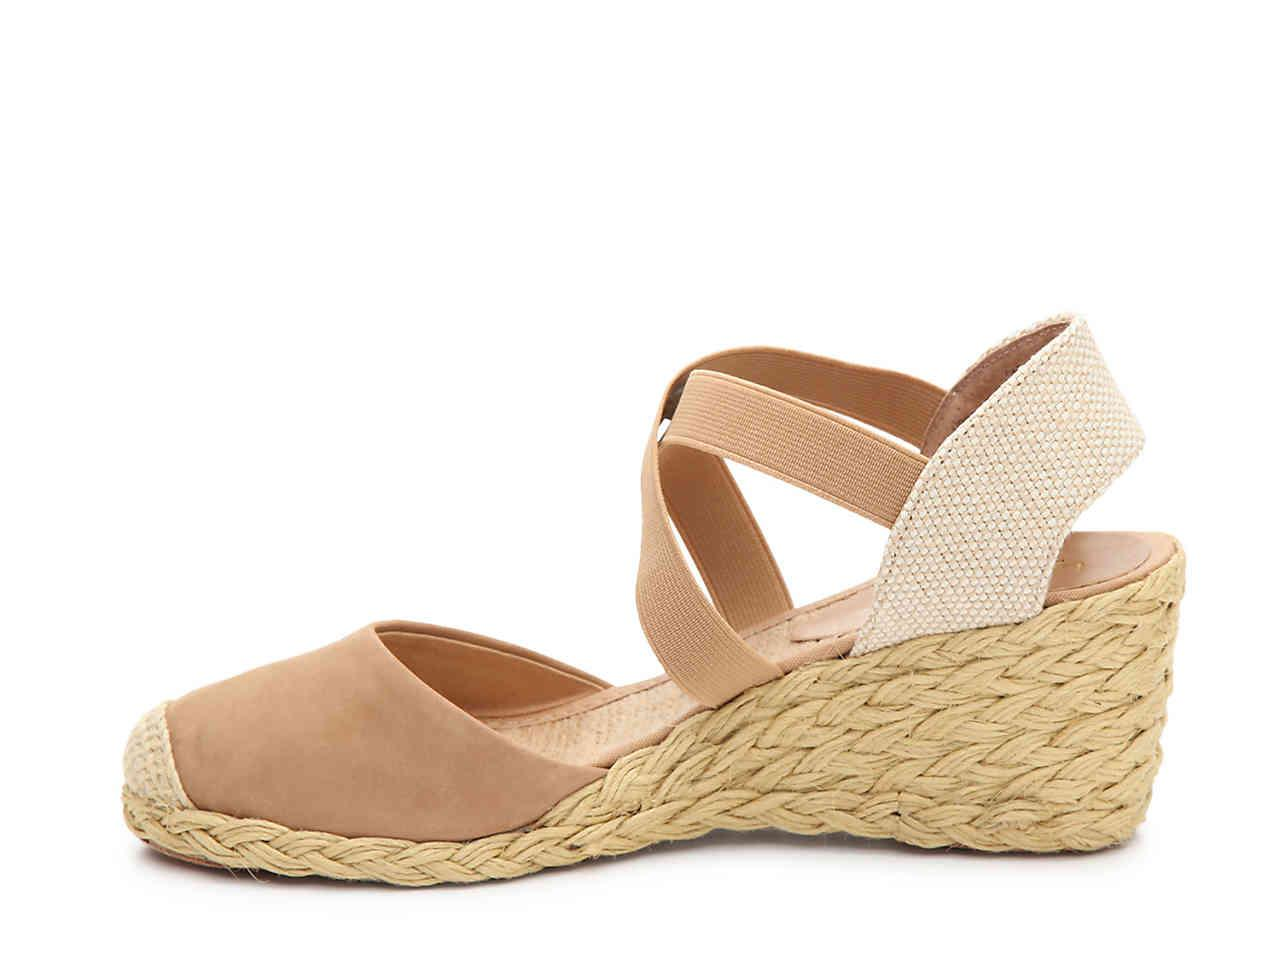 10b9f975778 Lyst - Lauren by Ralph Lauren Casandra Wedge Sandal in Natural